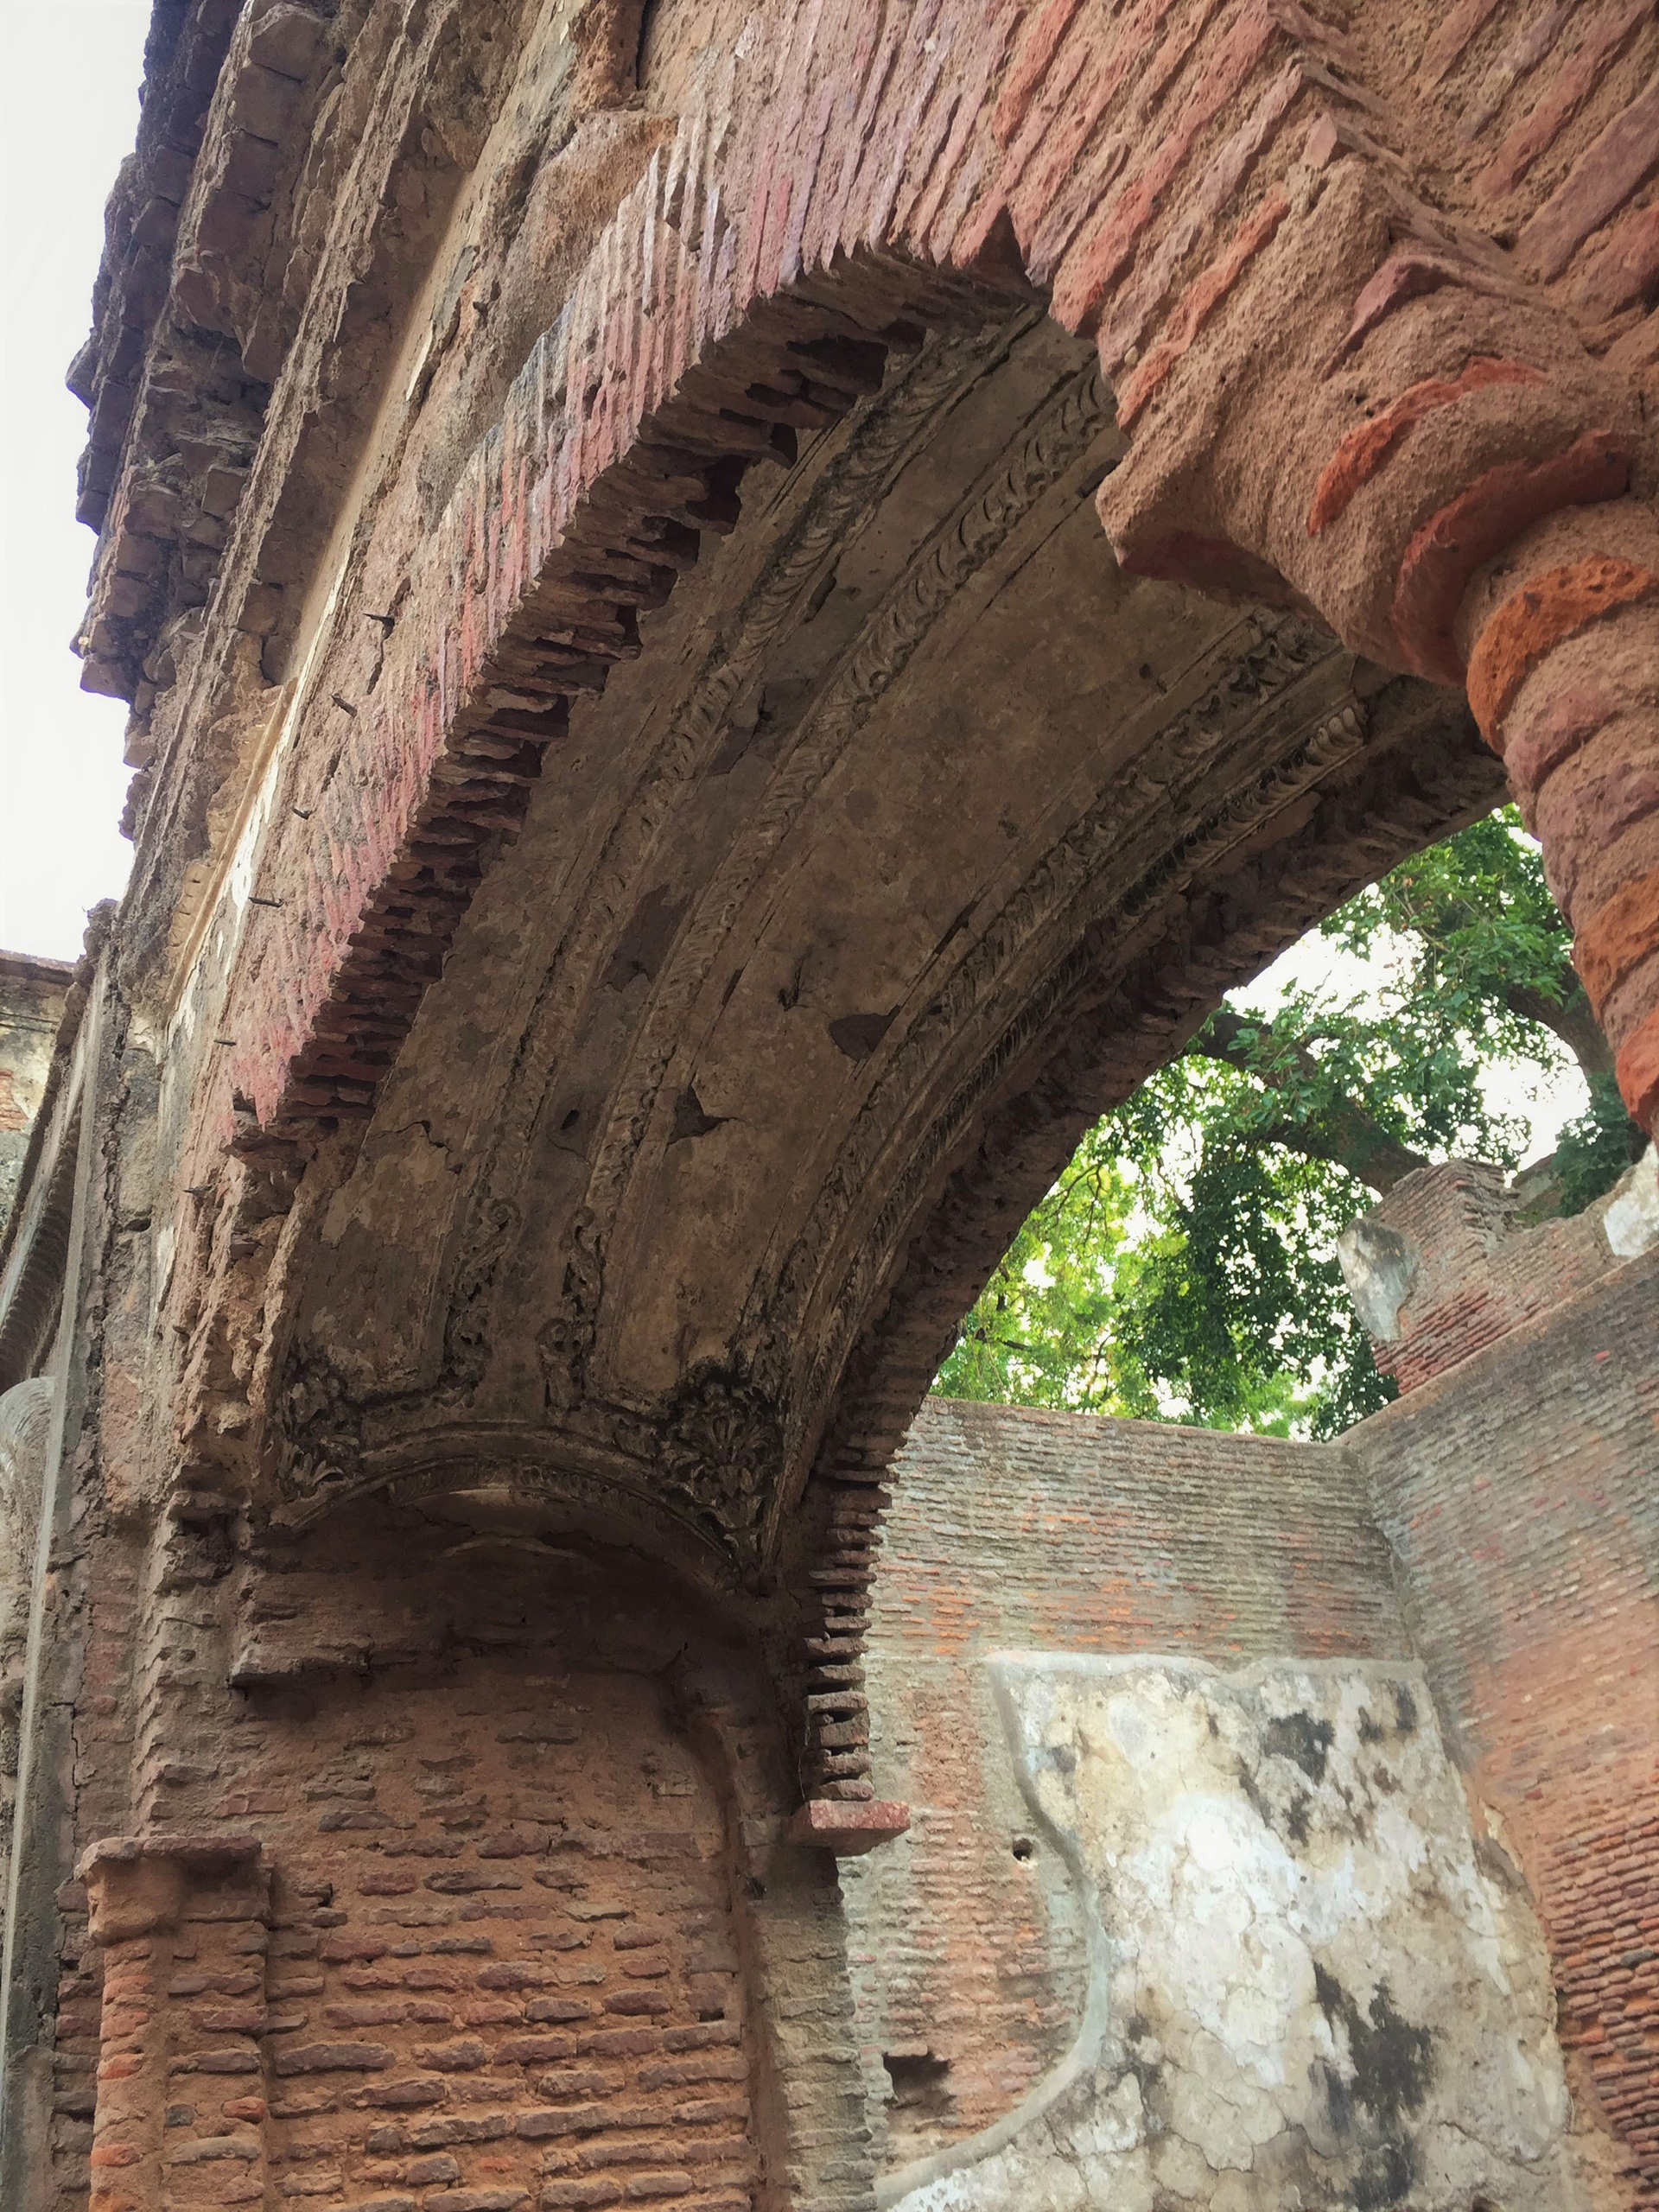 Stucco and ornament are deeper than its depth | The Residency| Lucknow| Soumitro Ghosh| STIR